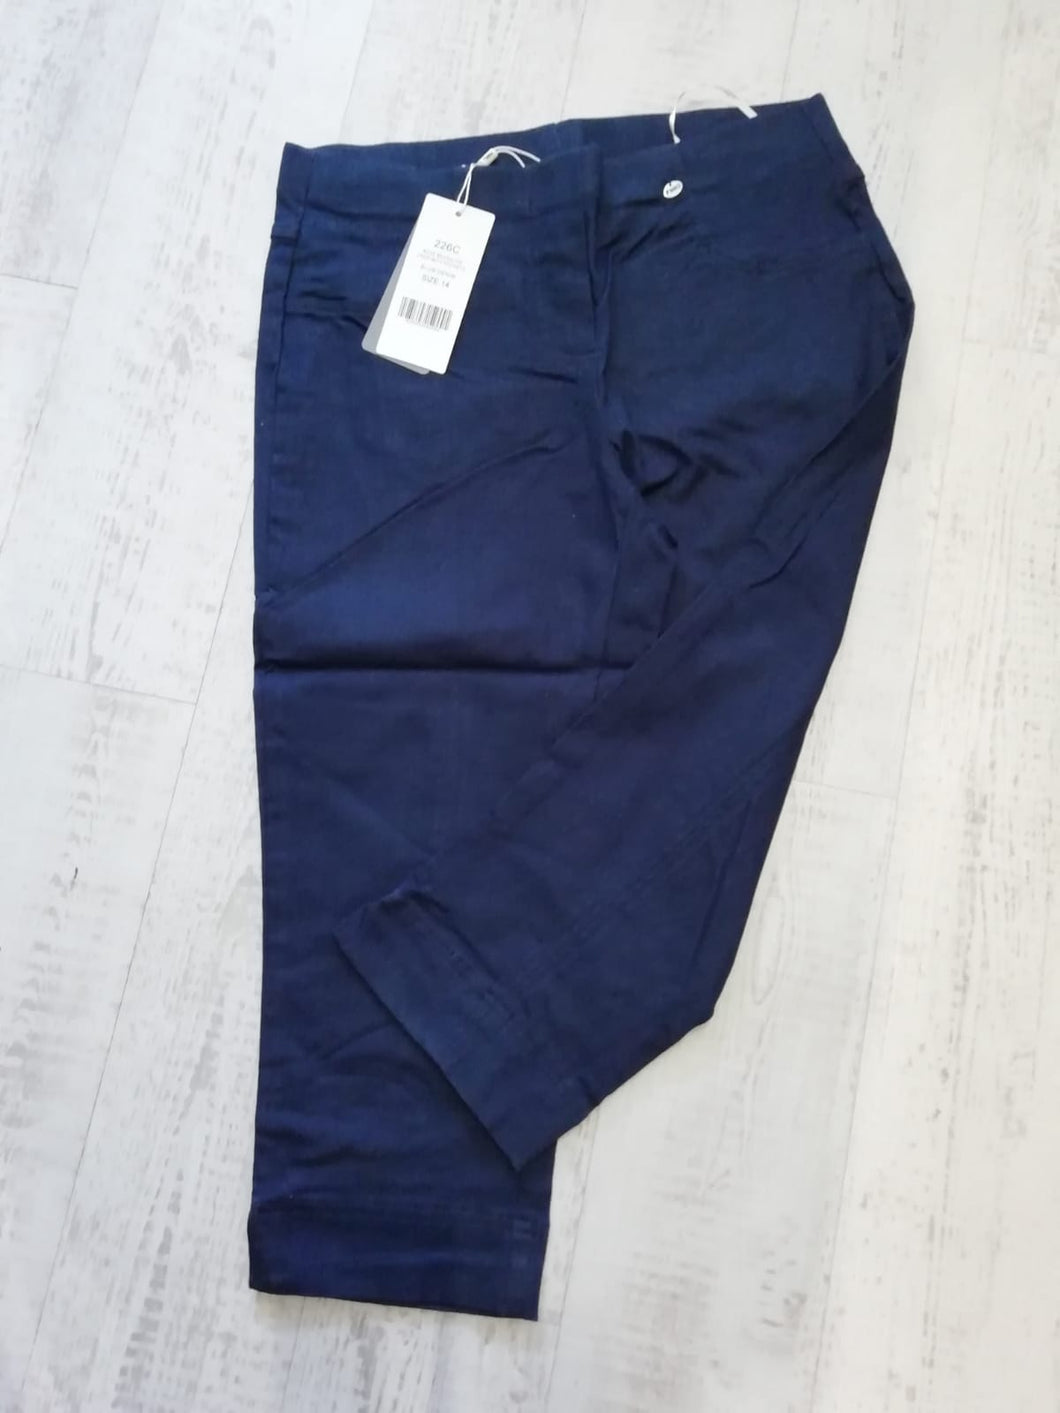 Pinns Navy Crop Trousers - size 8